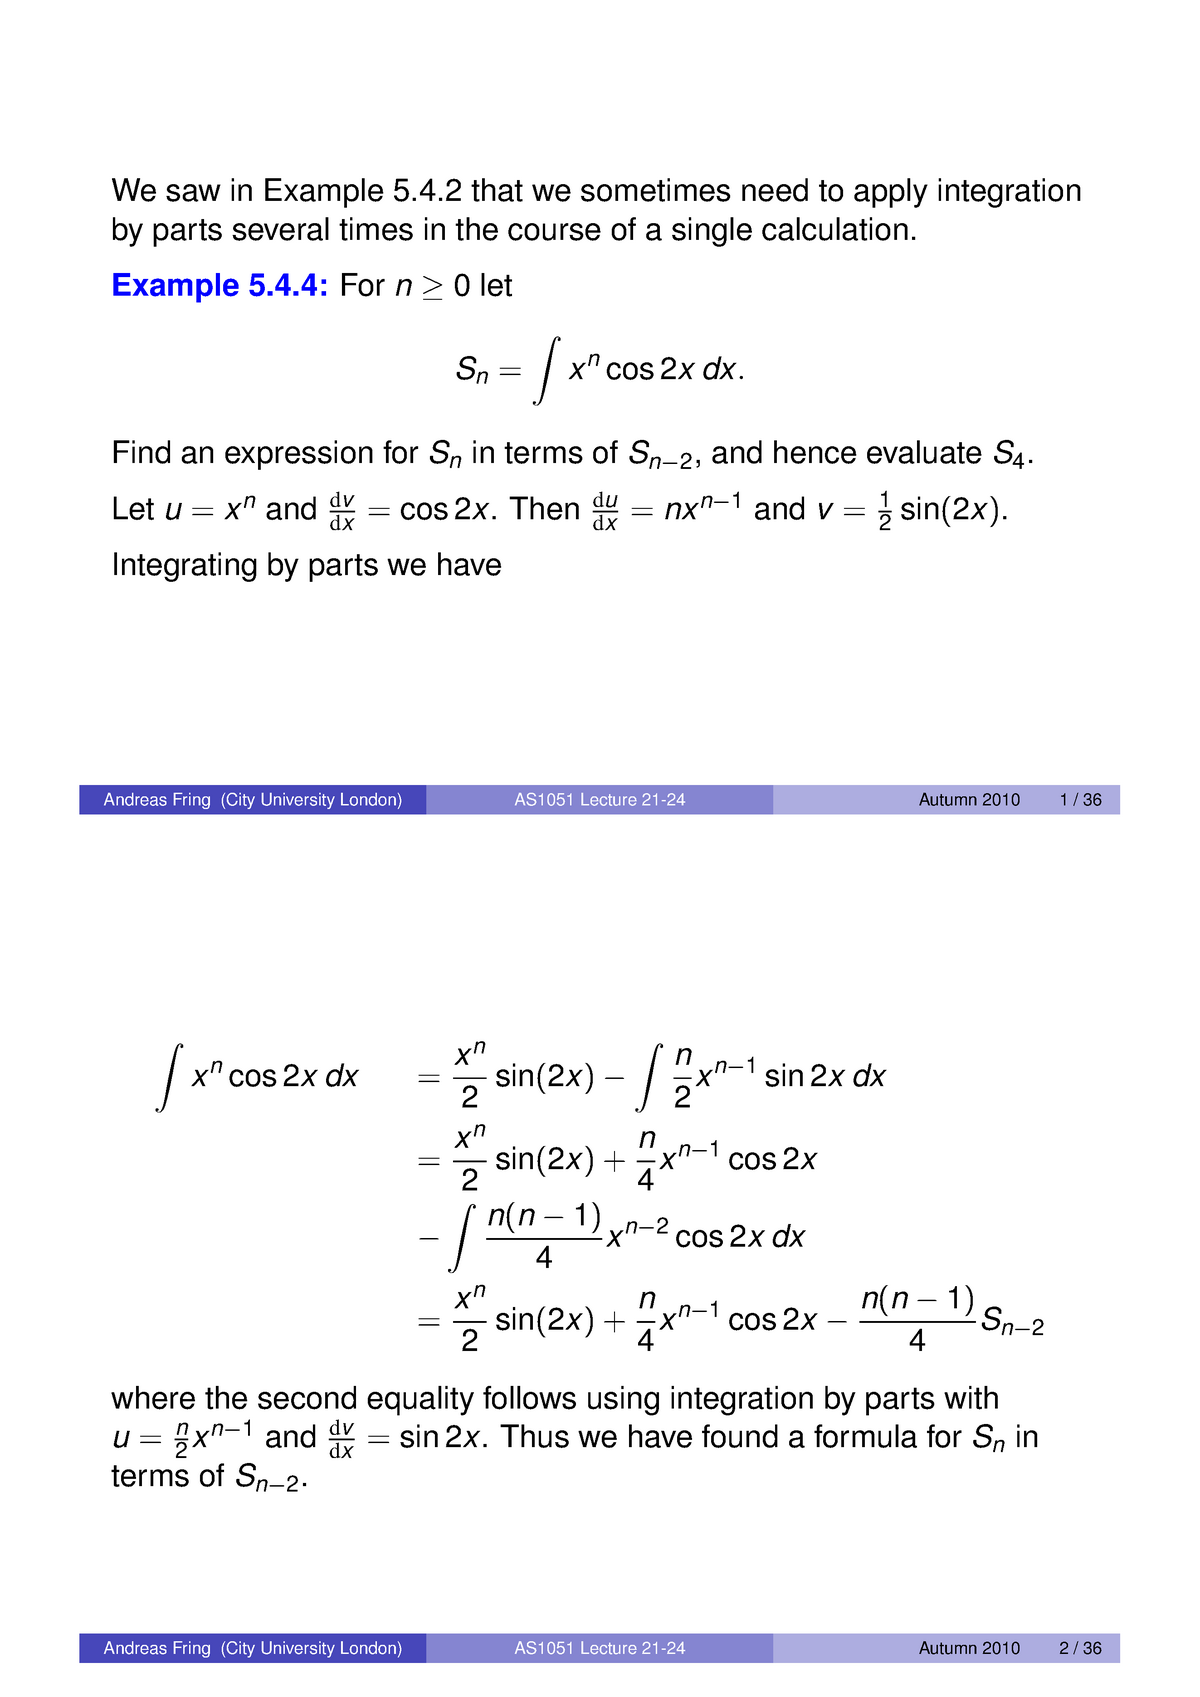 2010-2011 Lecture 21-24 - Mathematics for Acturial Science